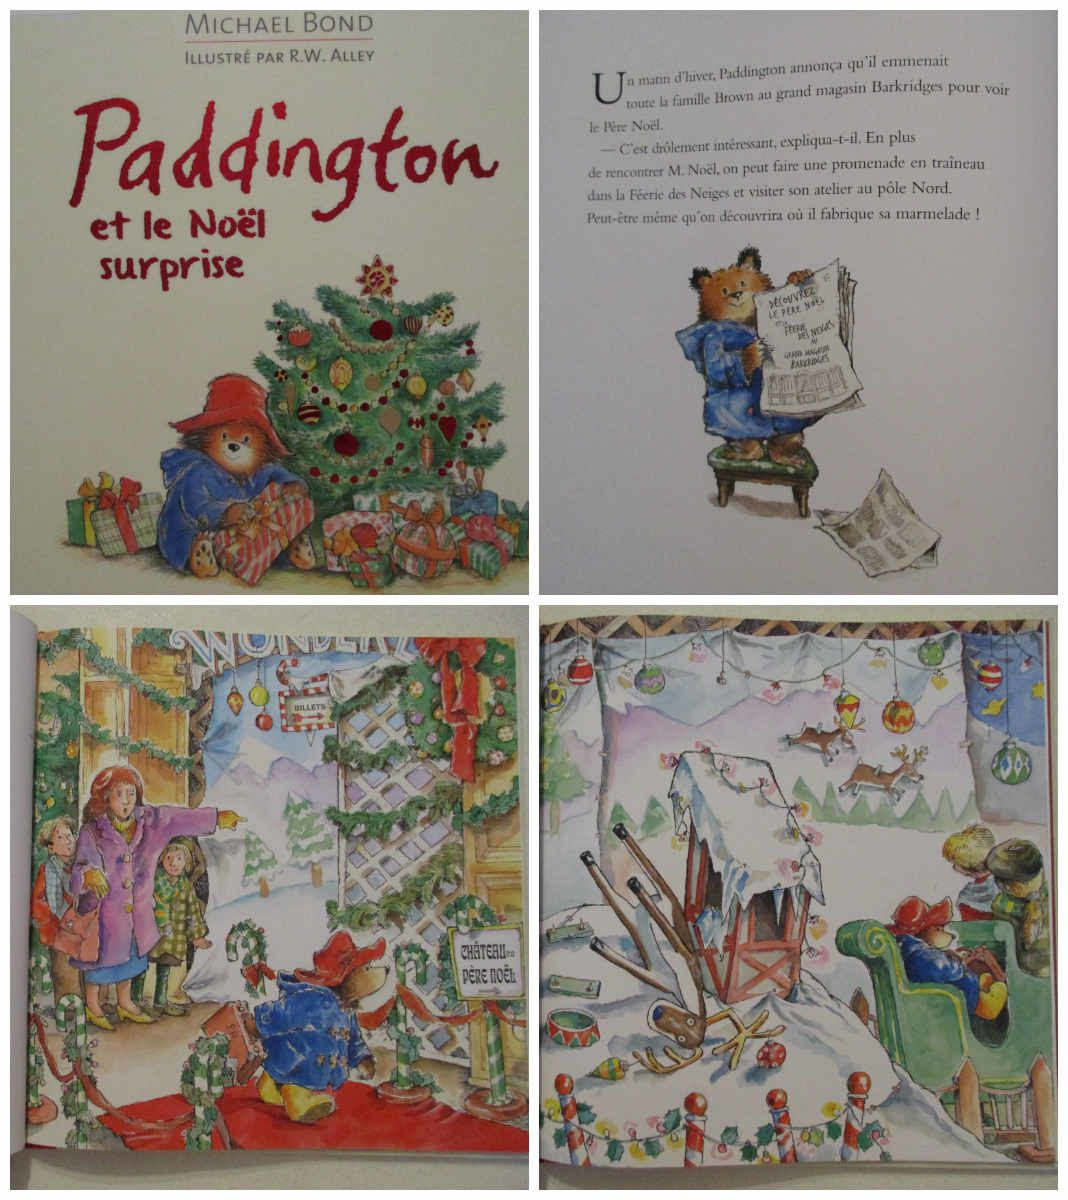 Paddington et les noël surprise {#EditionsMichelLafon}{#Paddington}{#Leblogdemamanlulu}{#Noel}